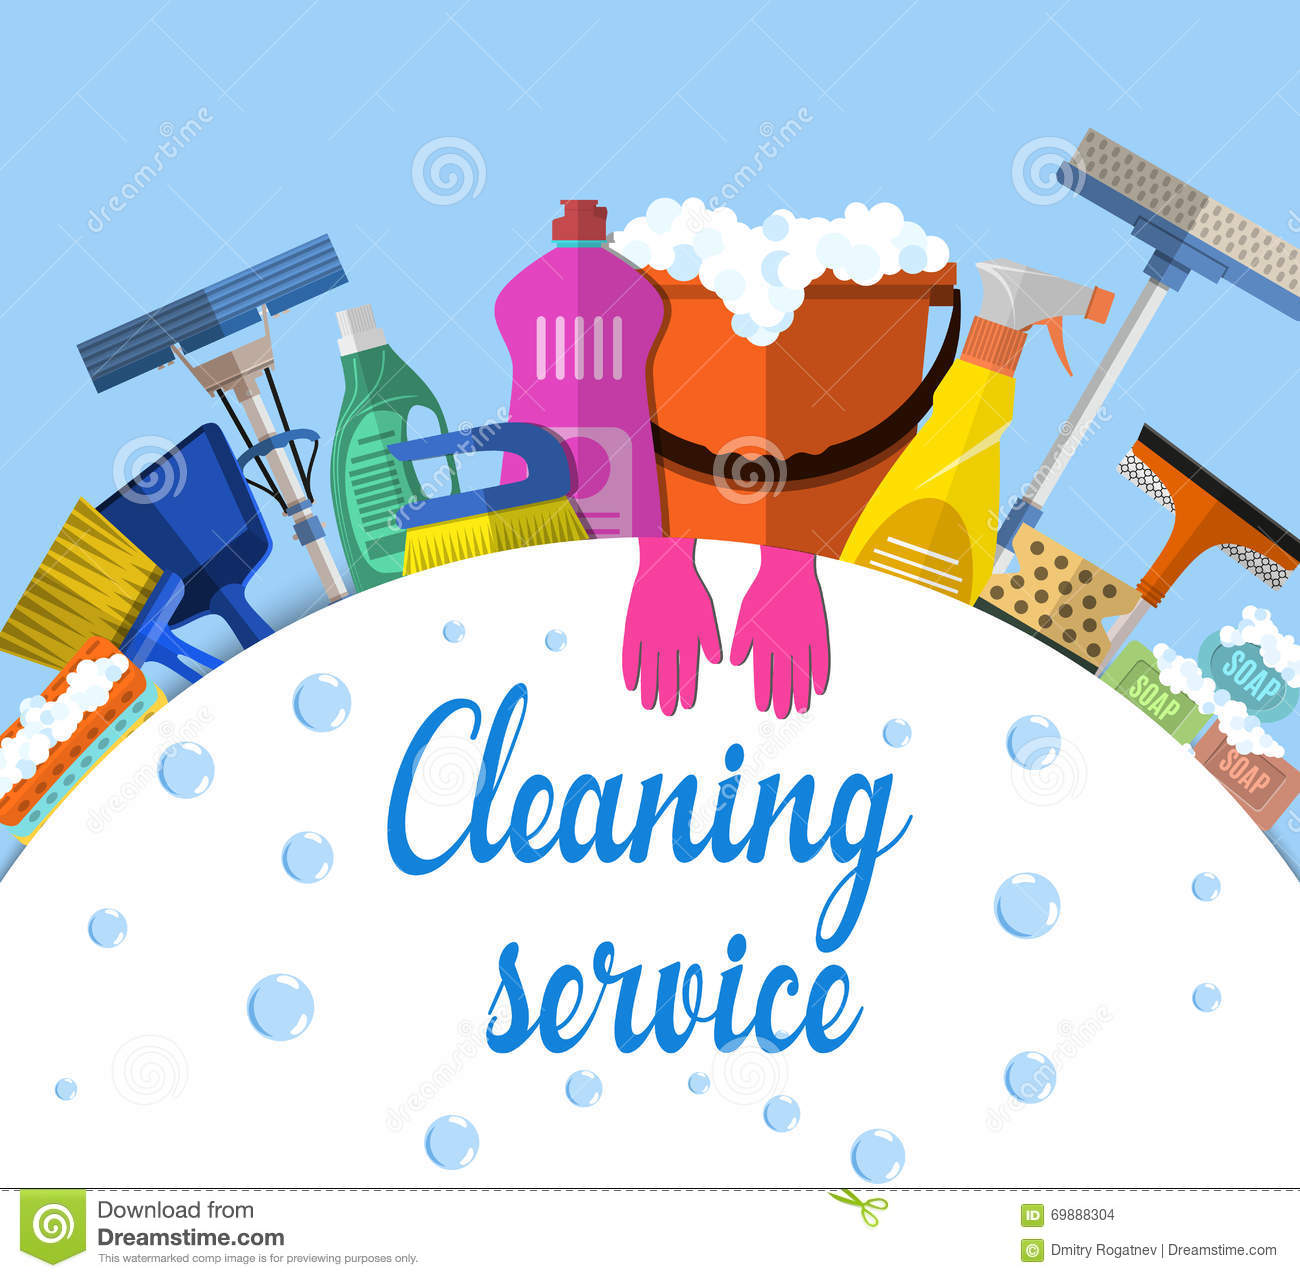 Cleaning Service Flat Illustration Vector Illustration